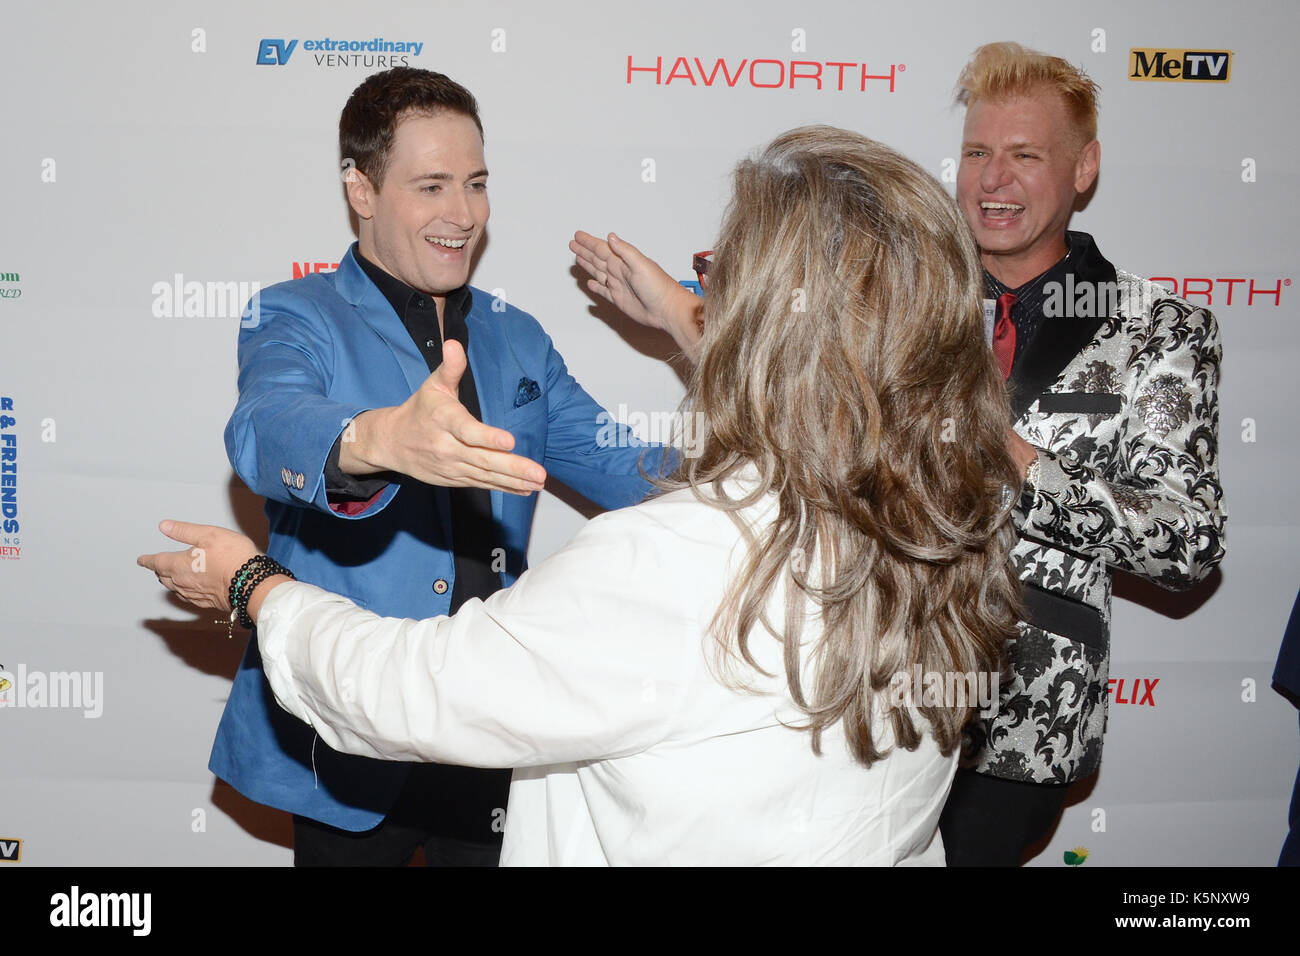 Randy Rainbow Rosie O'Donnell attends Ed Asner Friends Celebrity Poker Tournament Benefiting Autism Society Hayworth Stock Photo